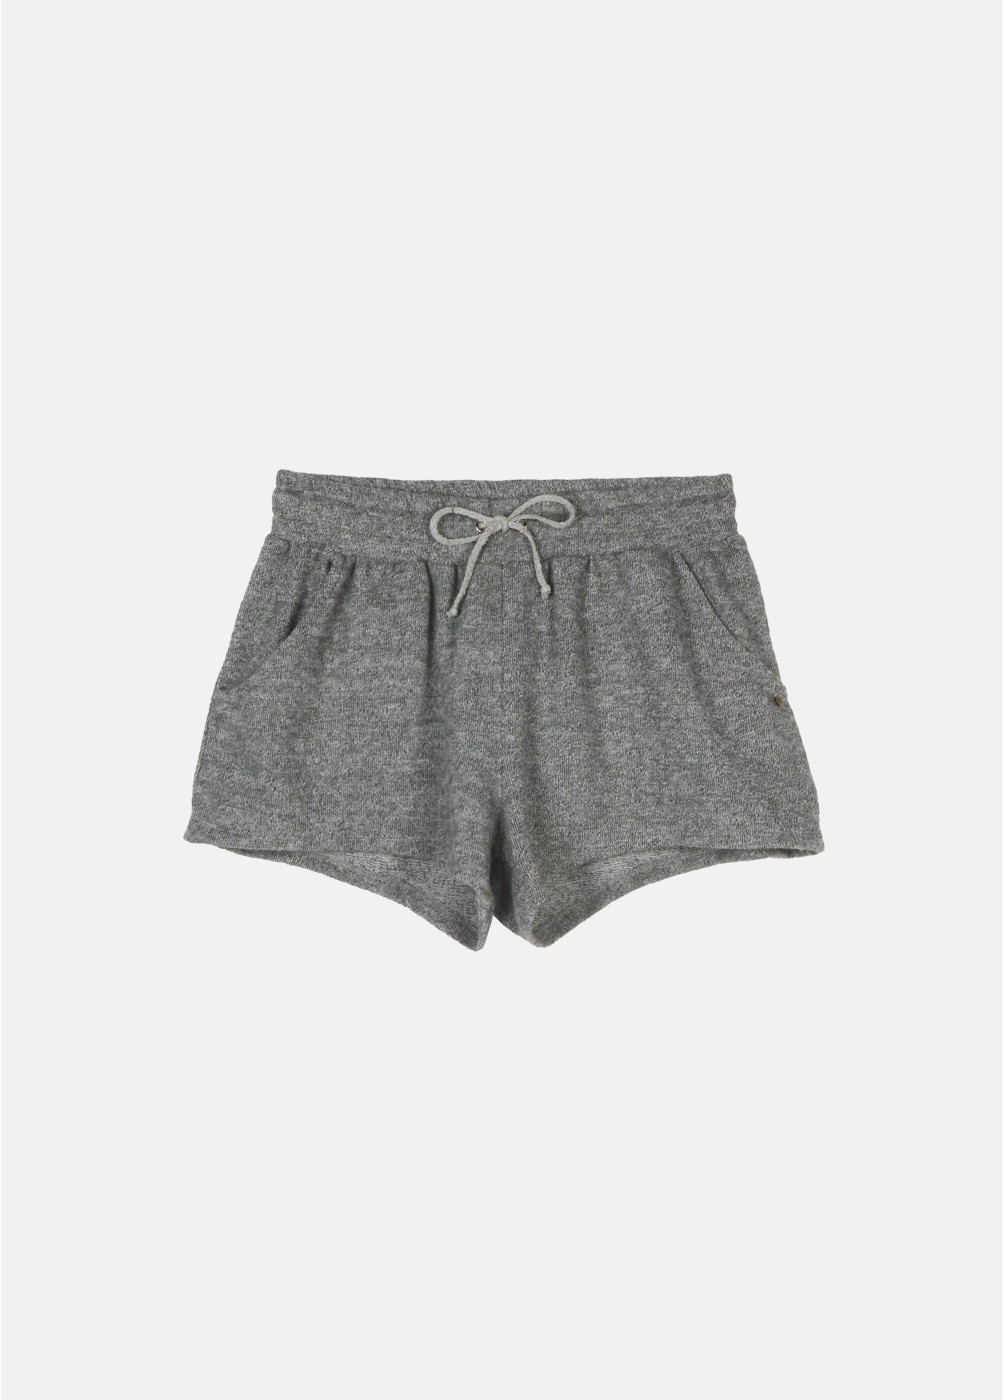 GROOVE BRUSHED SHORTS